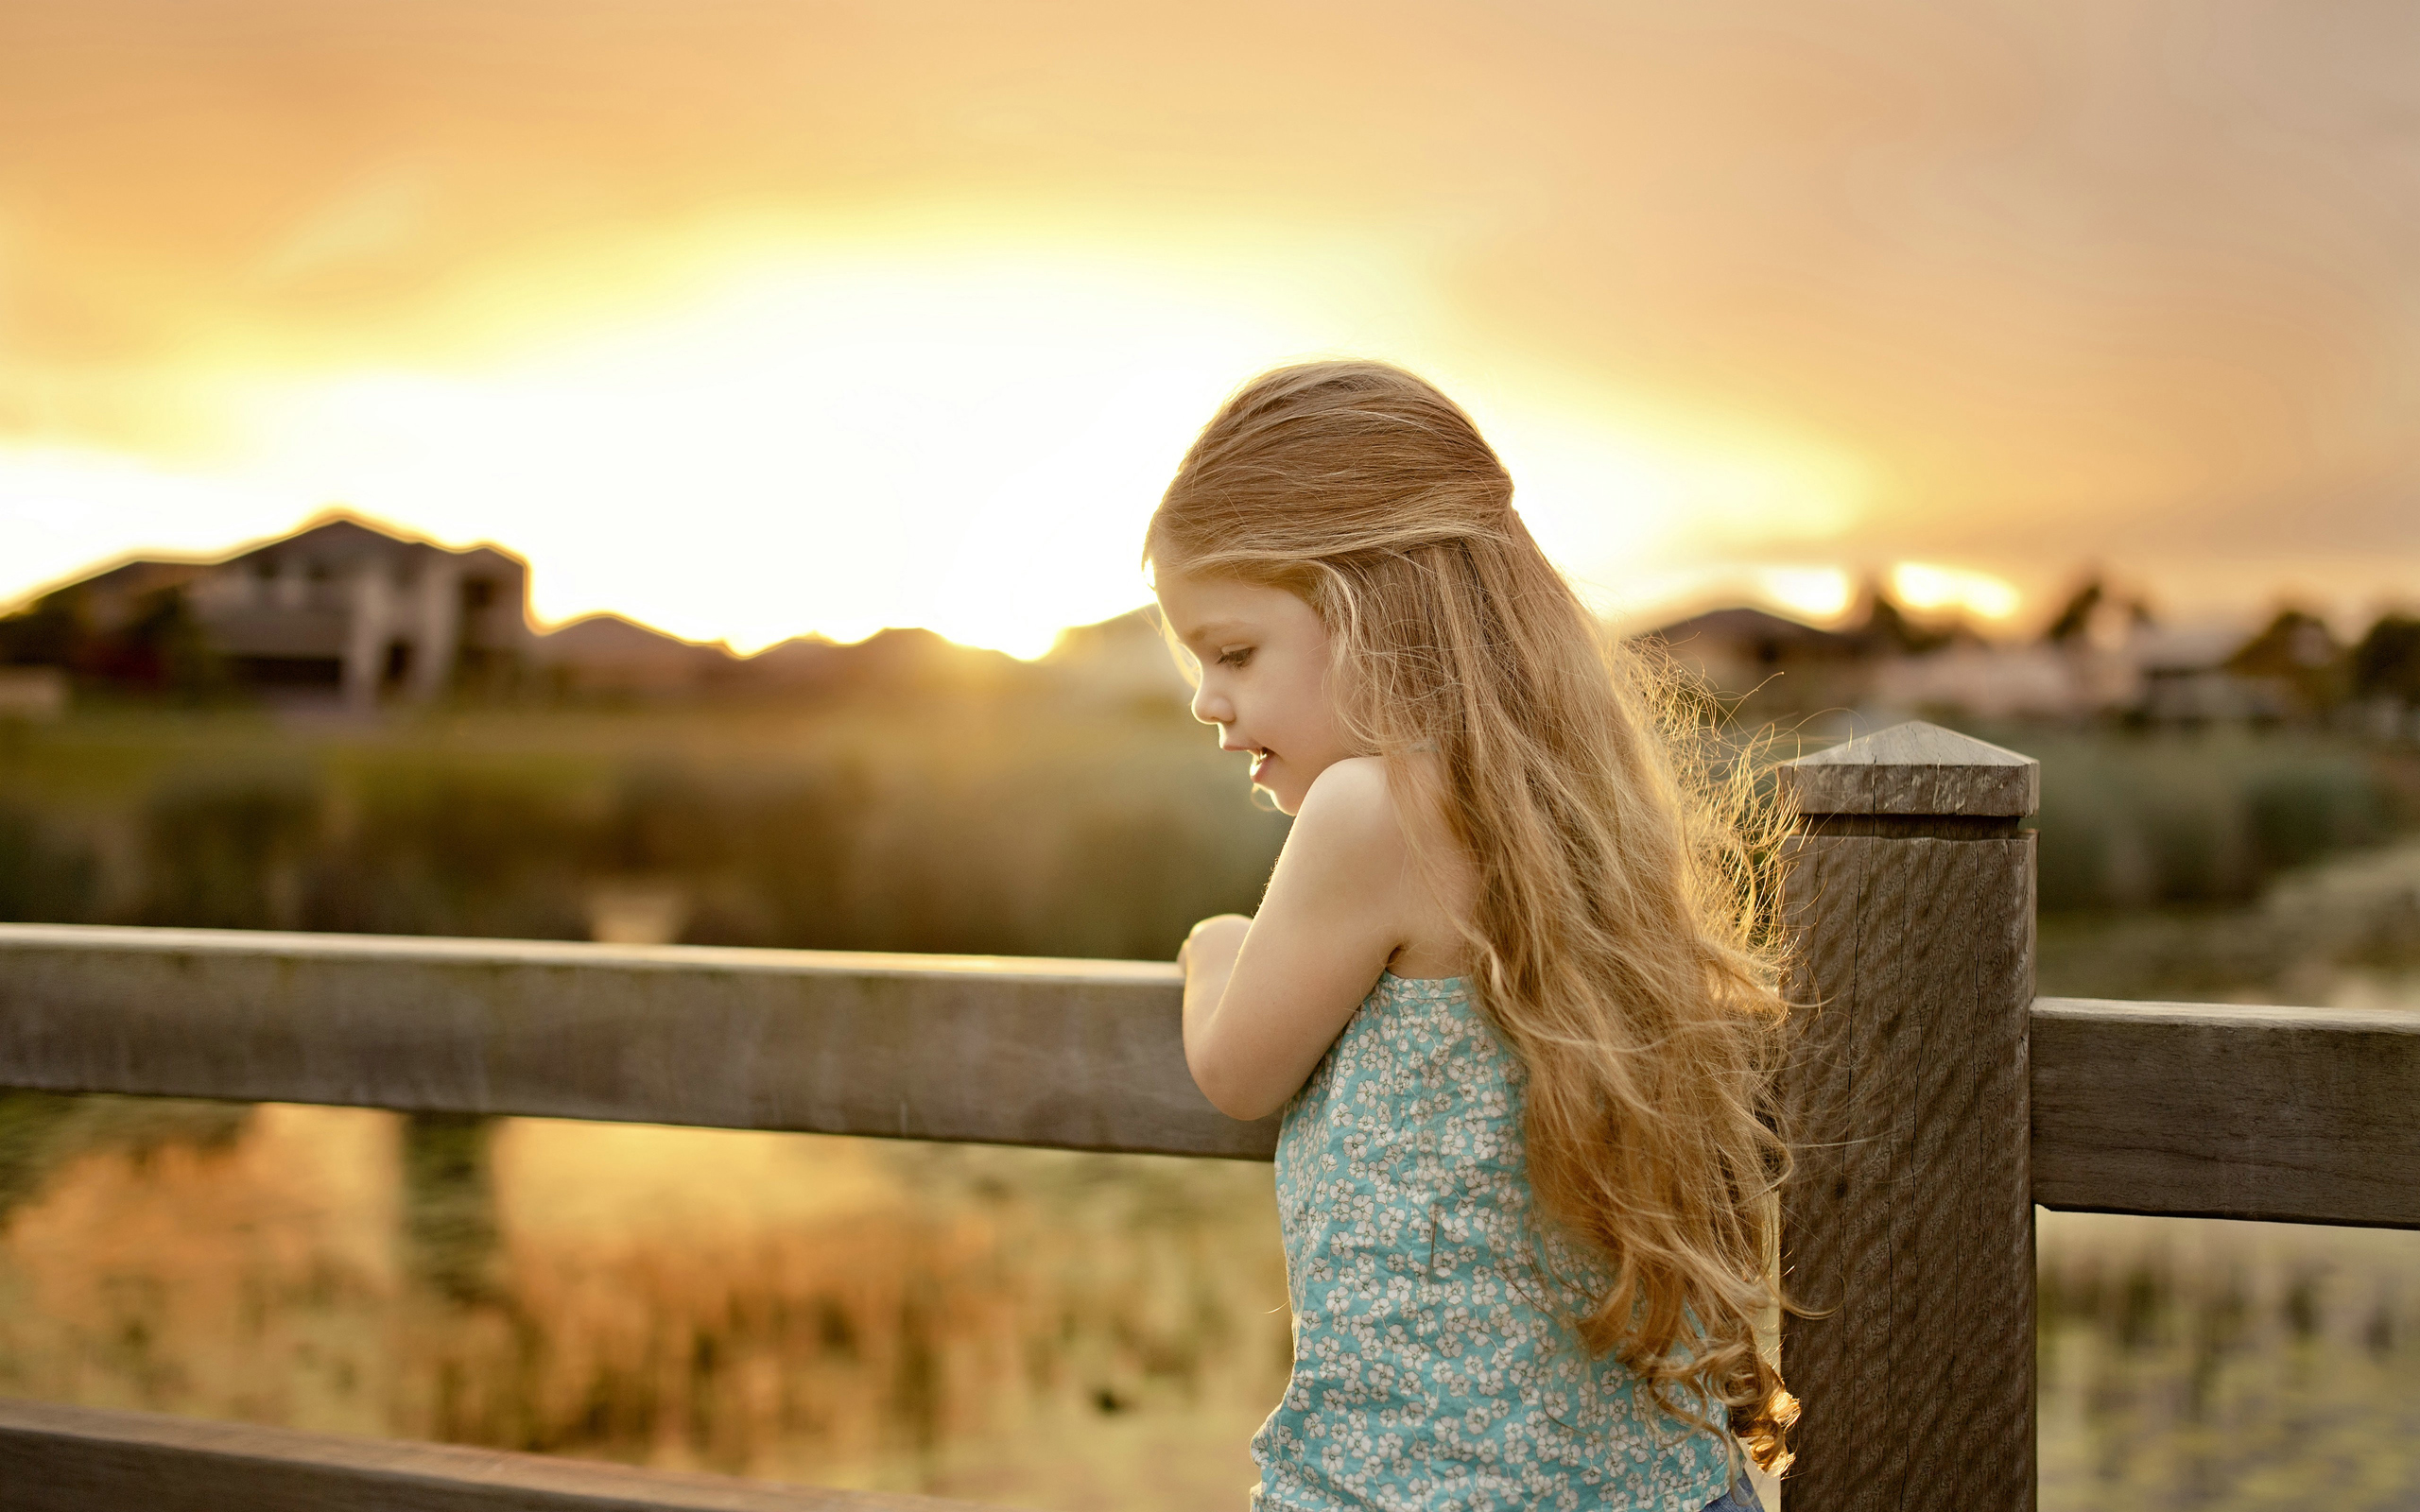 Free Download Long Hair Baby Girl Sunset Landscape Wallpaper Wallpapers 2560x1600 For Your Desktop Mobile Tablet Explore 97 Long Hair Wallpapers Long Hair Wallpapers Hair Stylist Wallpaper Wallpaper Hair Luxury